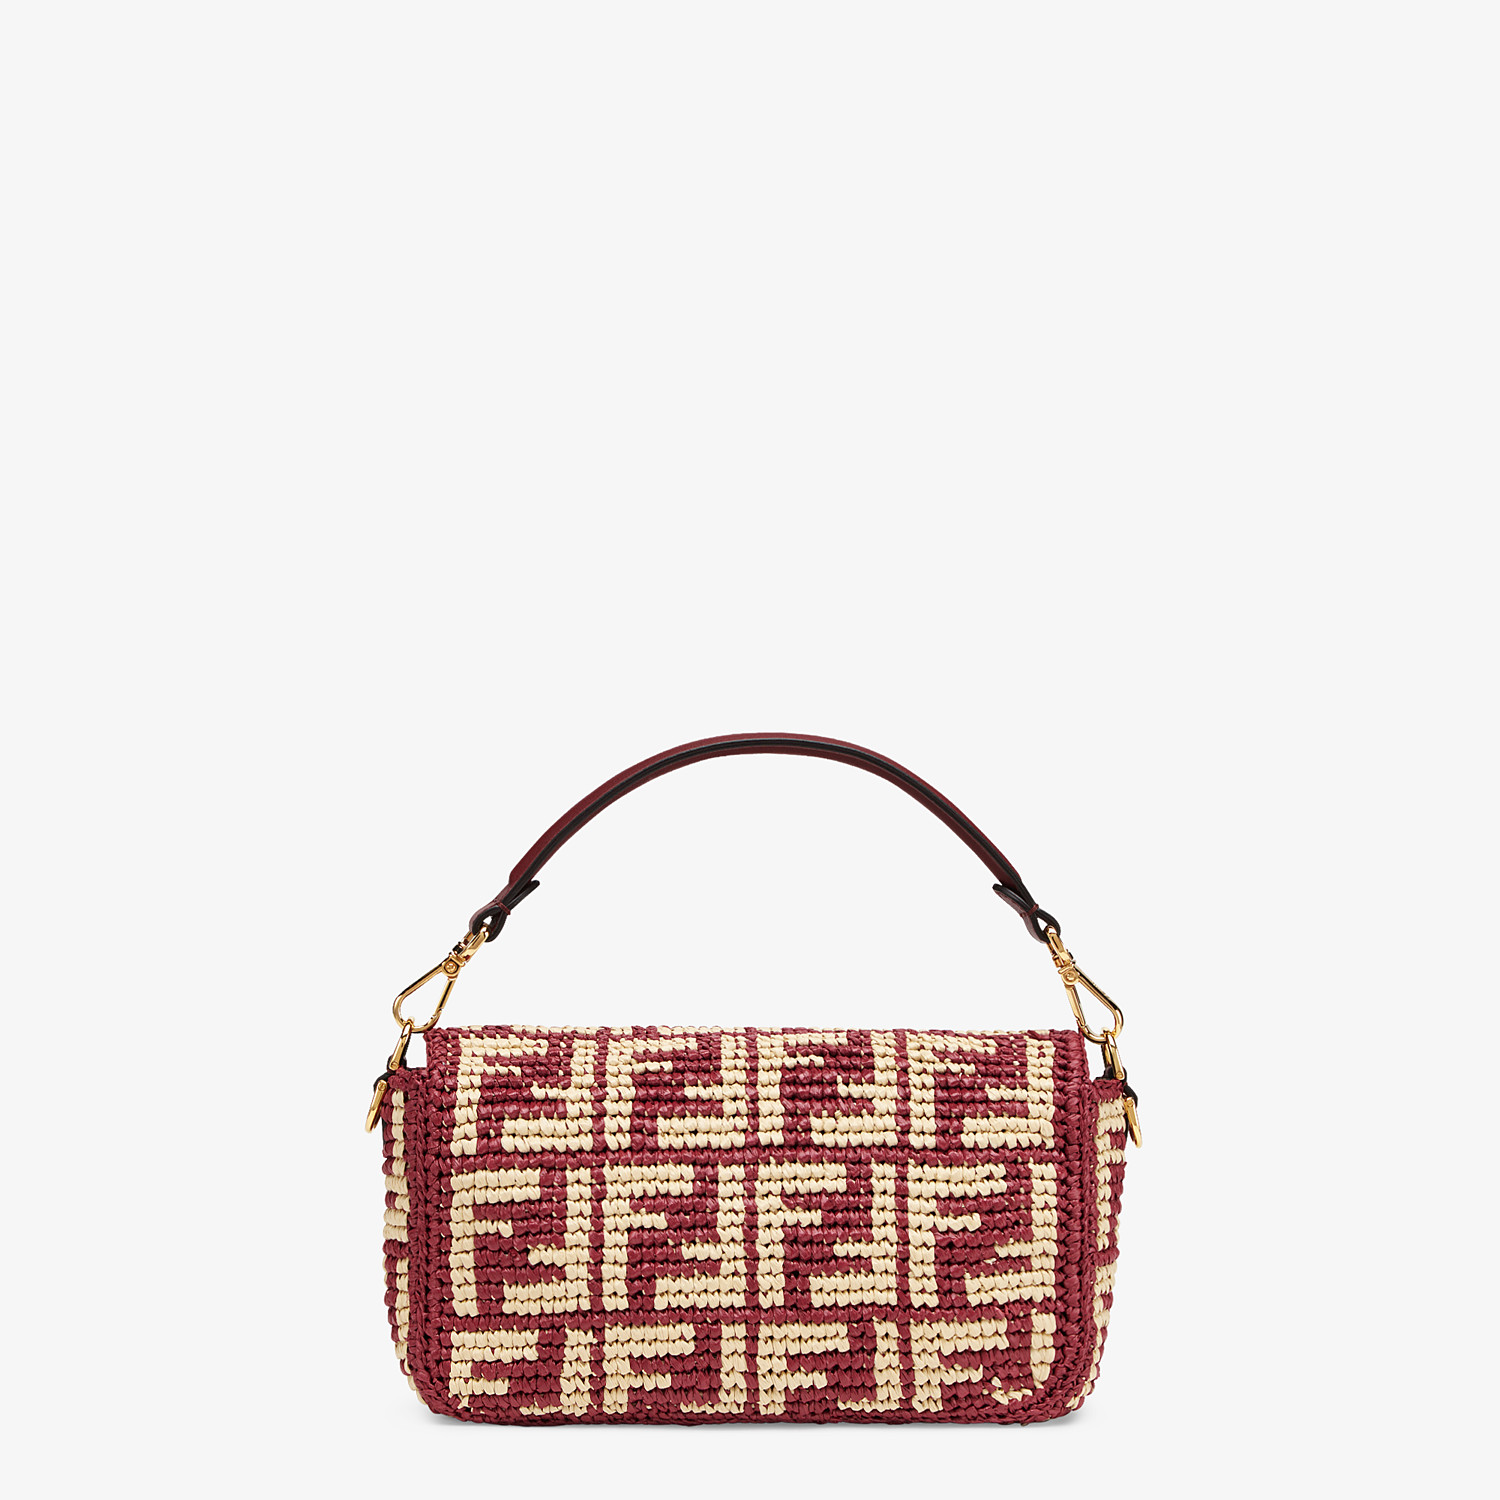 FENDI BAGUETTE - Burgundy raffia FF bag - view 4 detail